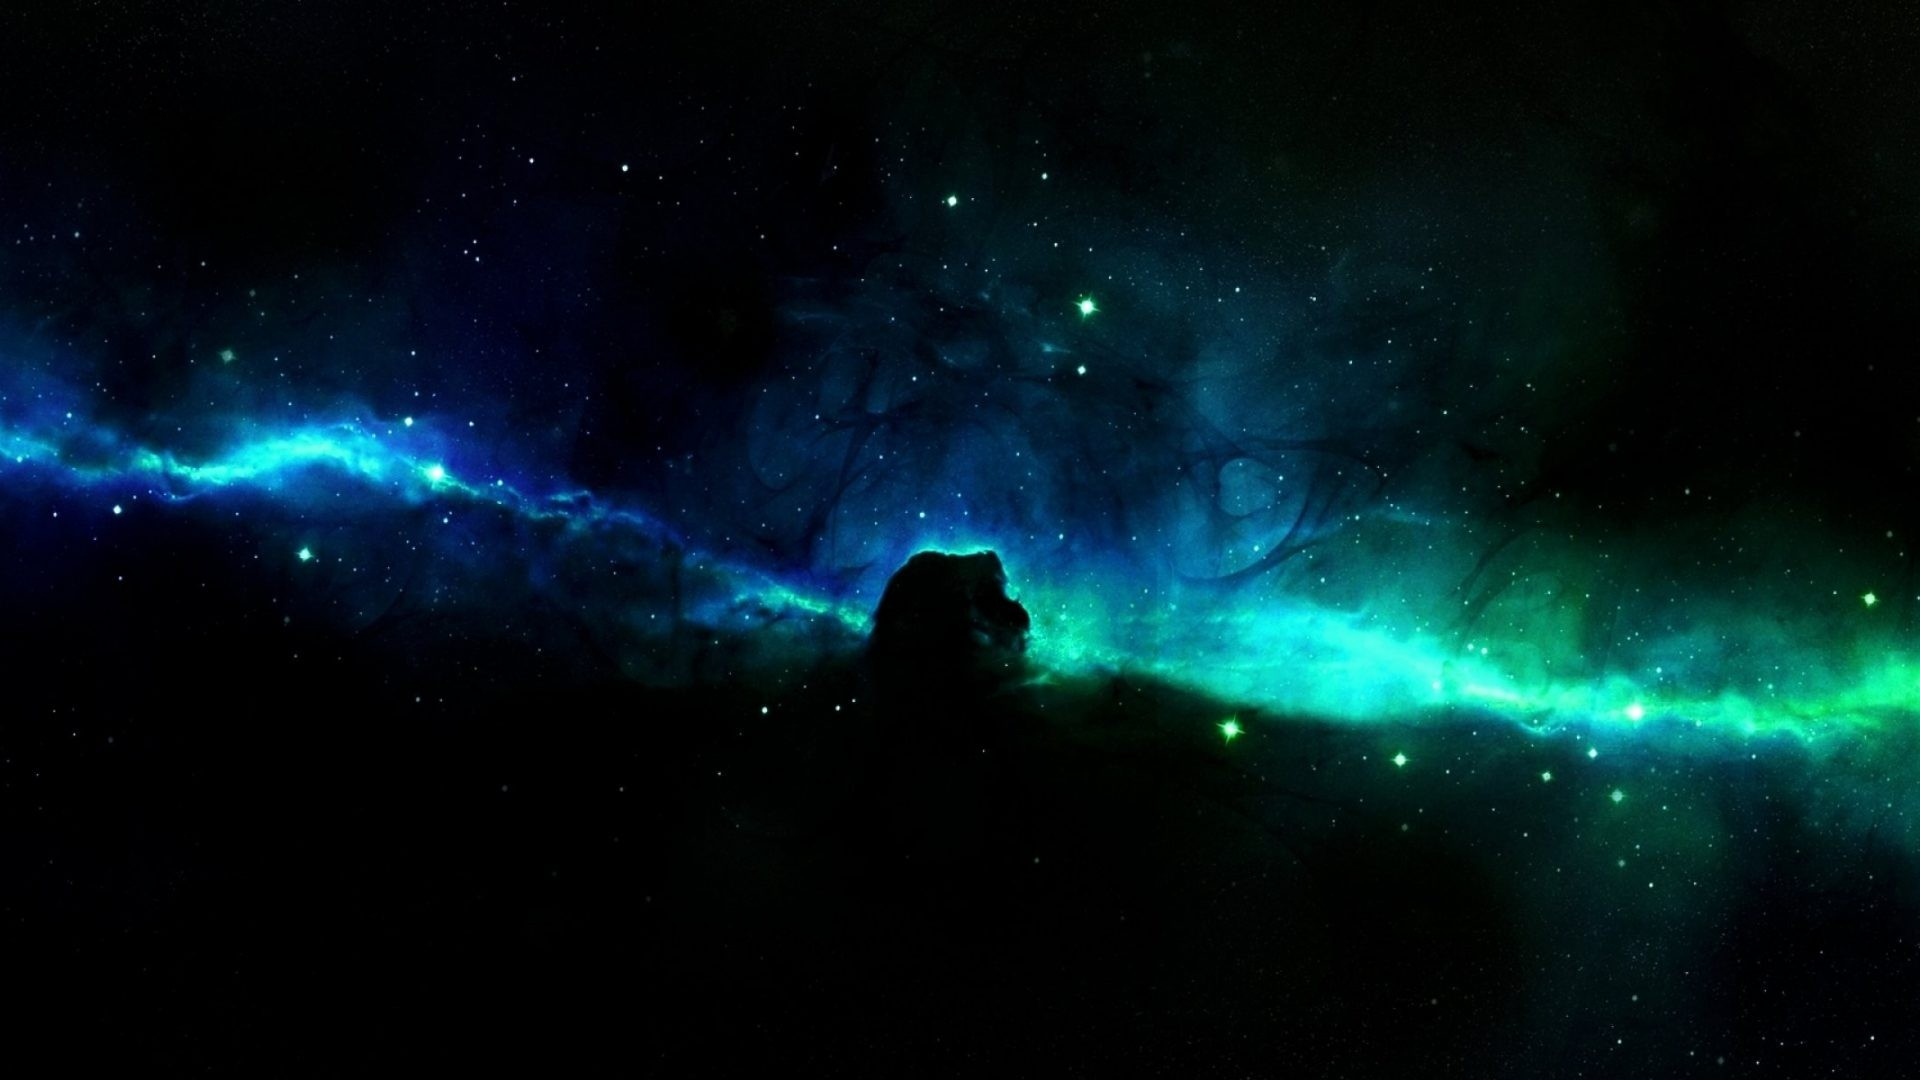 Dual Monitor Wallpaper Space 1 Download Free Cool Full HD